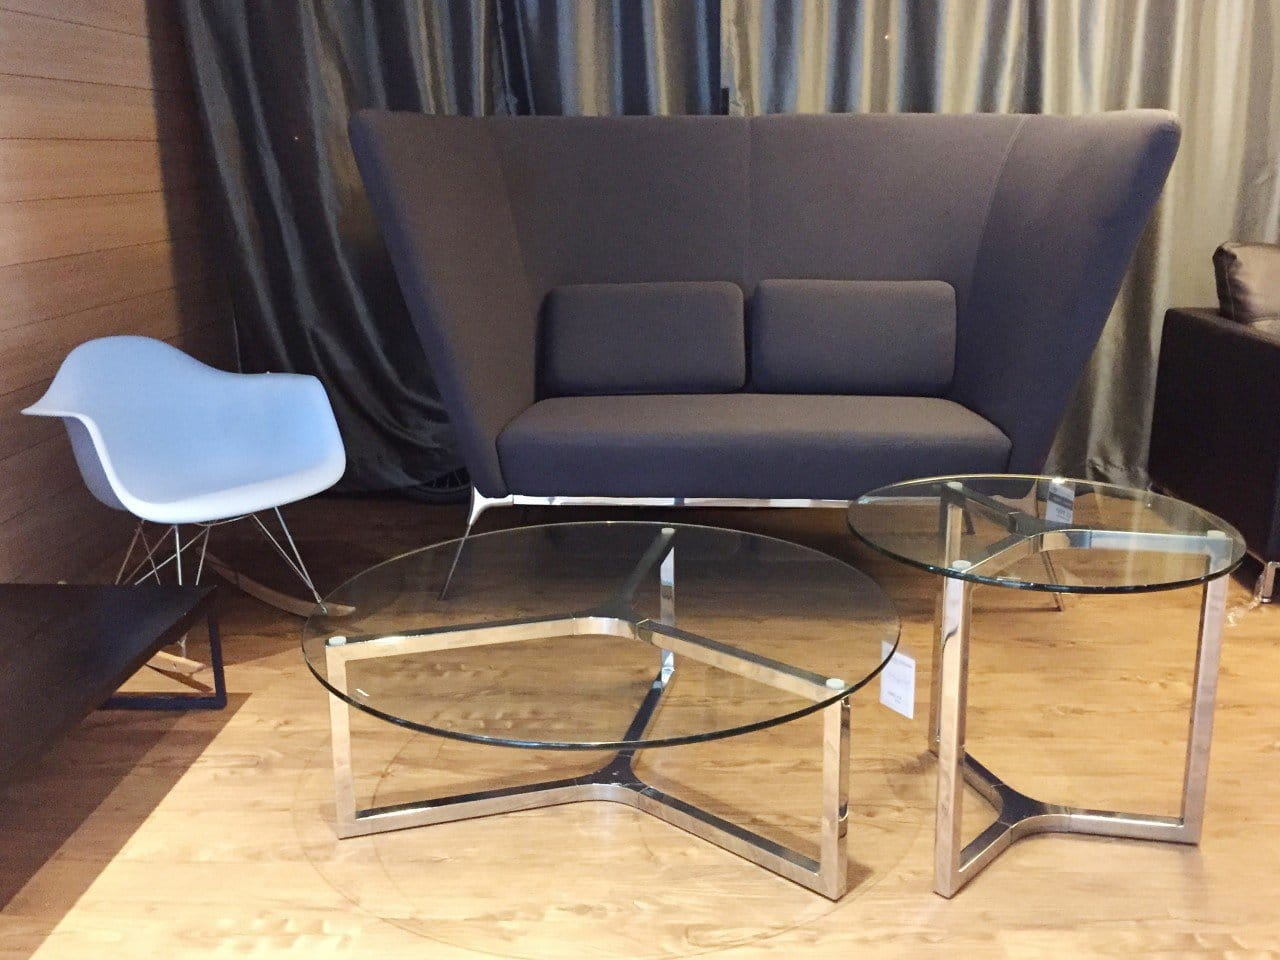 Product(s) seen: [Gum – PP + Rocking Armchair, Private Sofa - Highback, Kravit Coffee Table – Dia1000 x H360 & Kravit Coffee Table – Dia600 x H540]